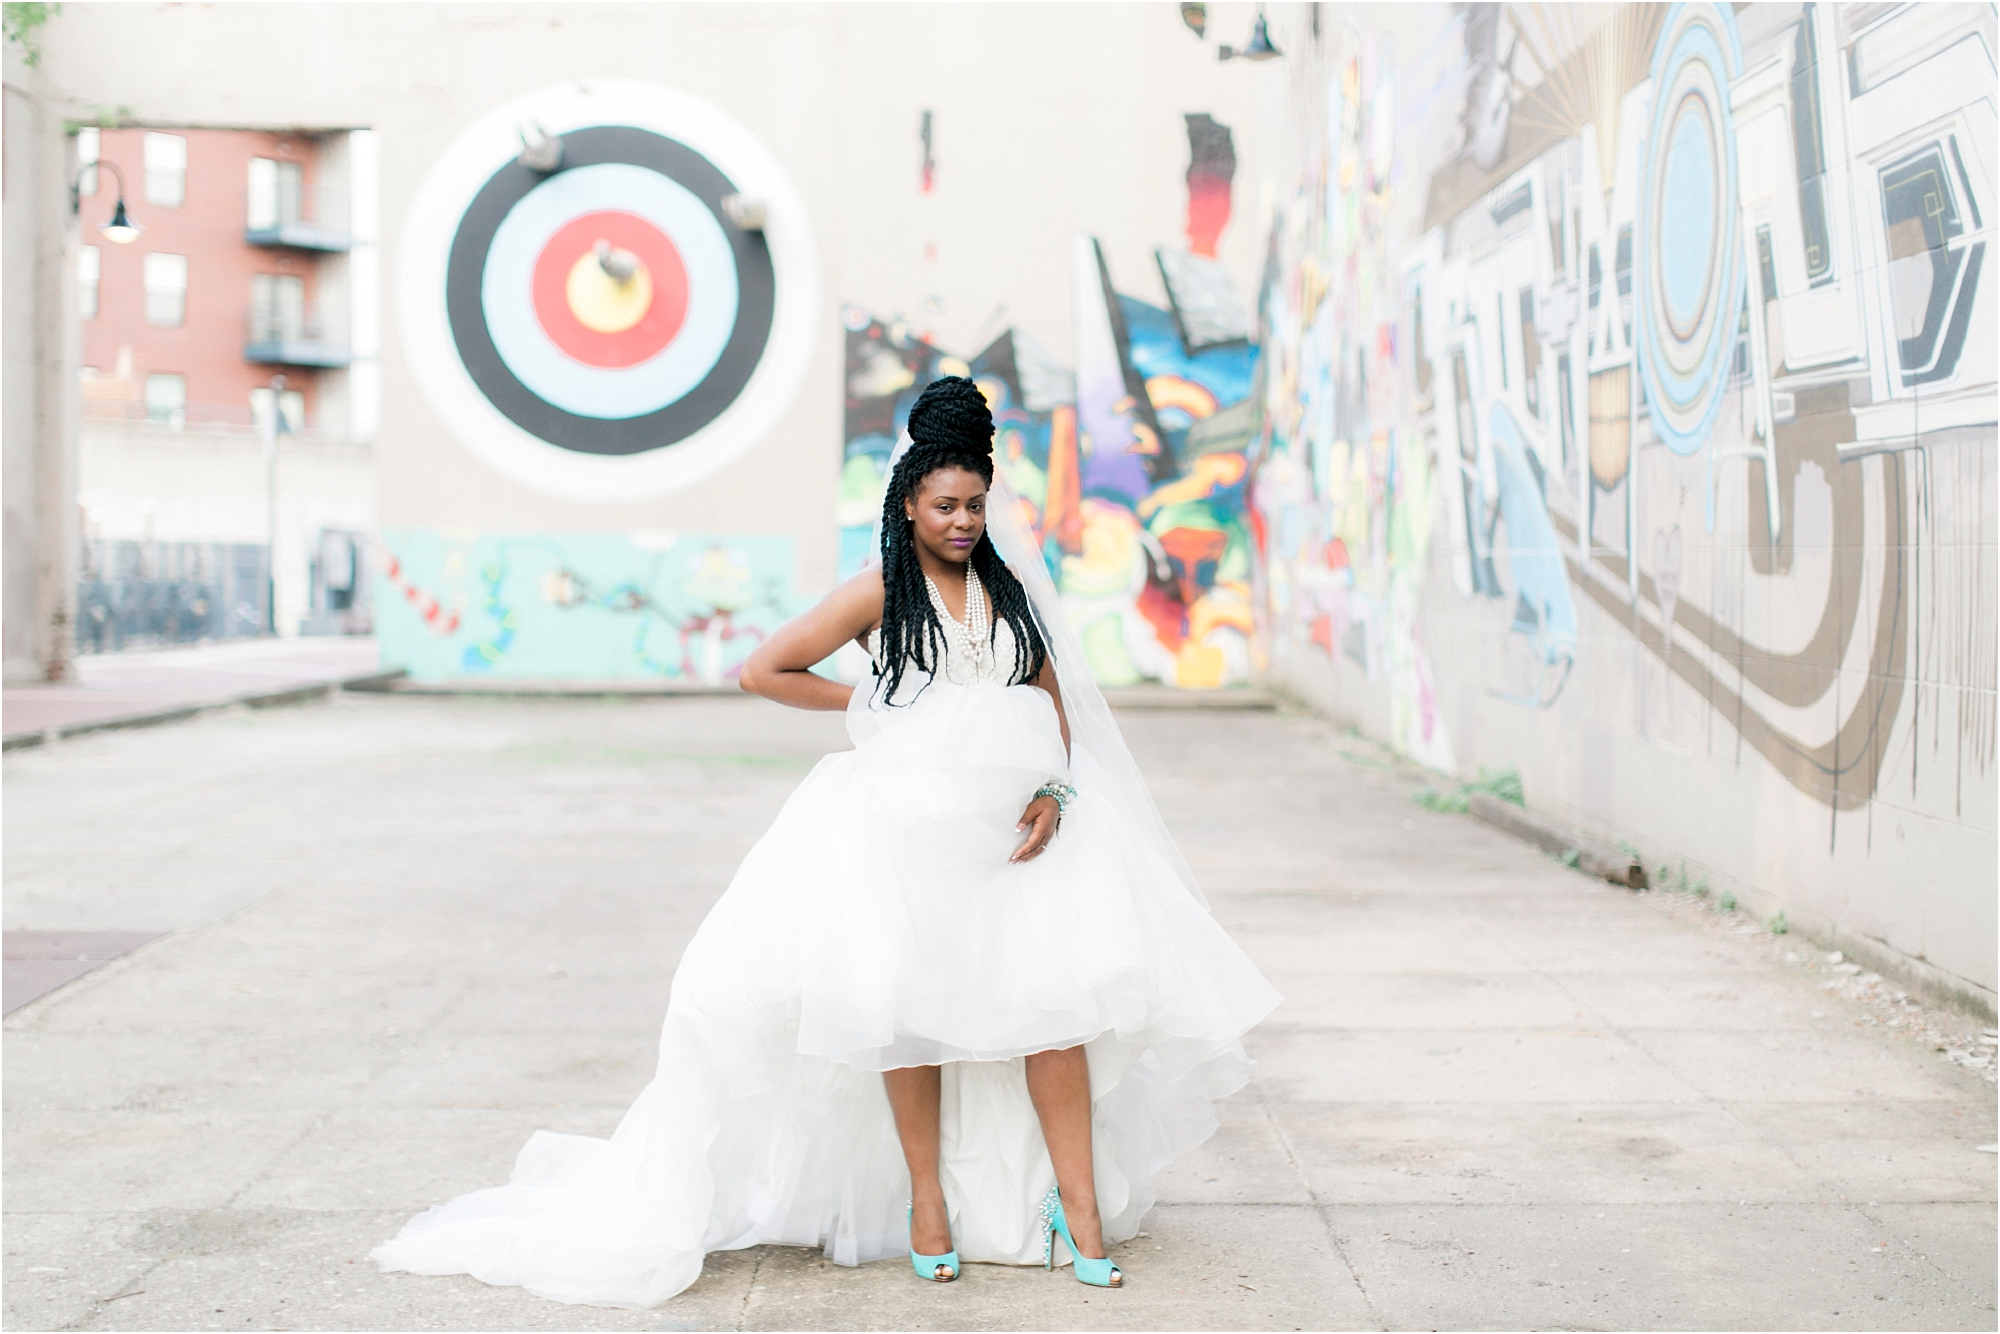 urban-set-bride-richmond-virginia-street-art-bridal-session-photos_0005.jpg